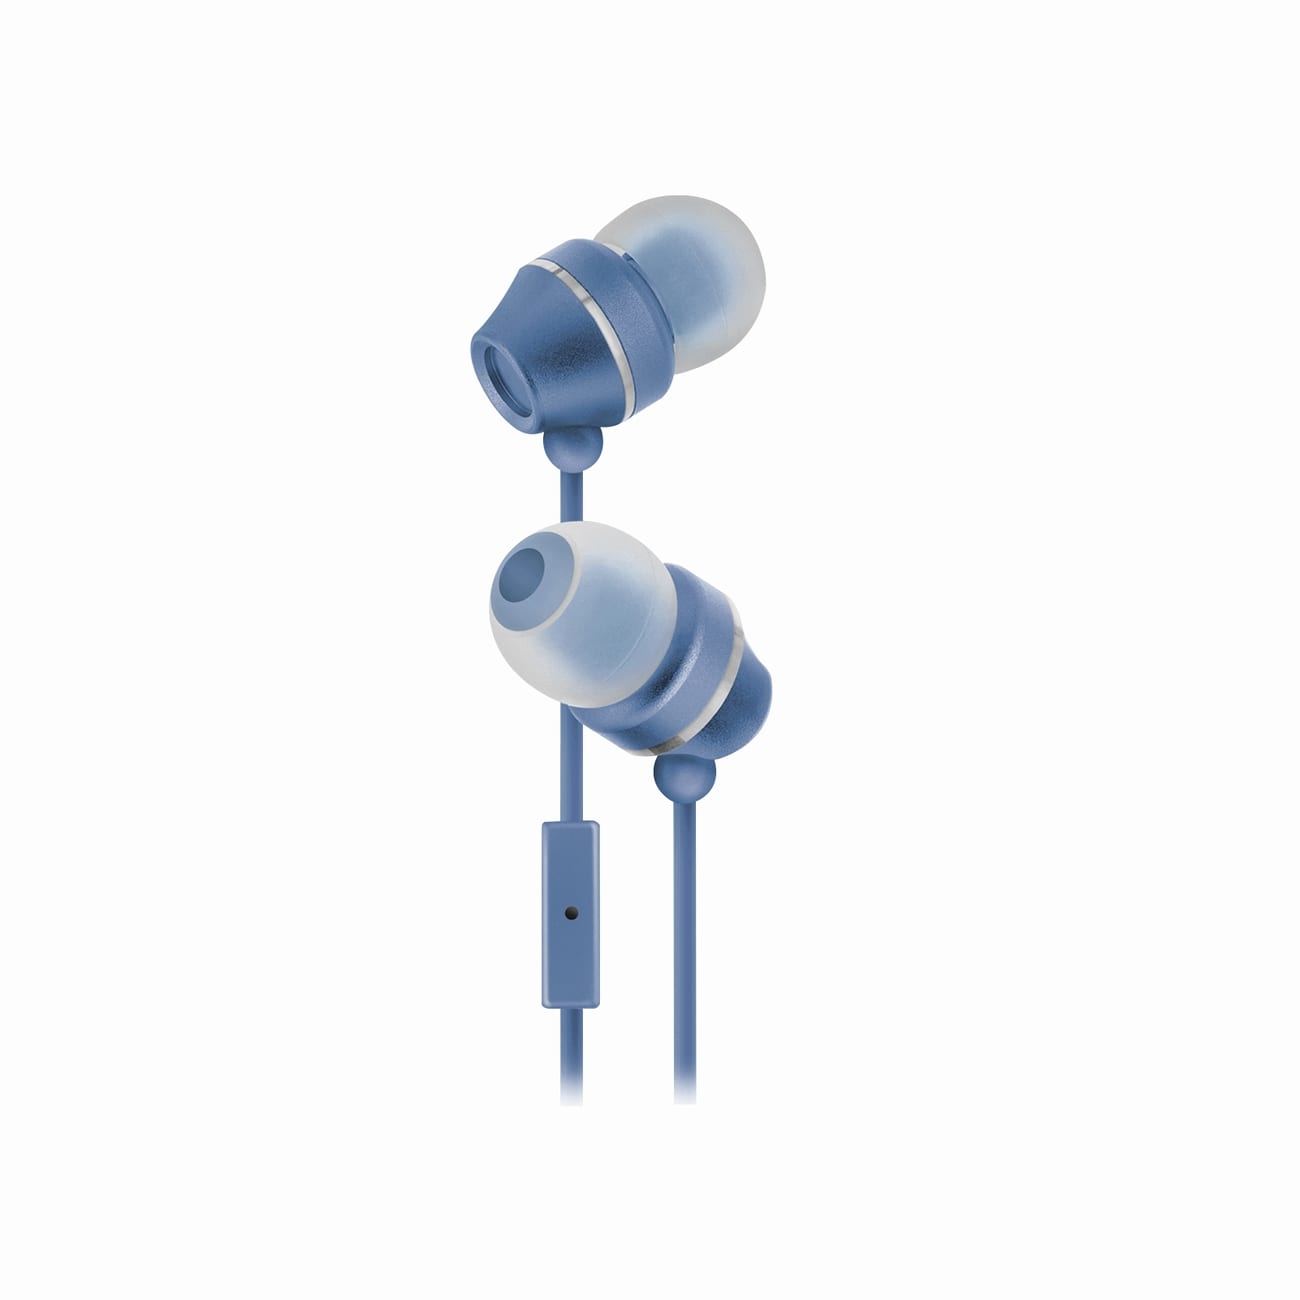 Sentry Industries HM165: Stereo Earbuds with in-line Mic in white package In Blue